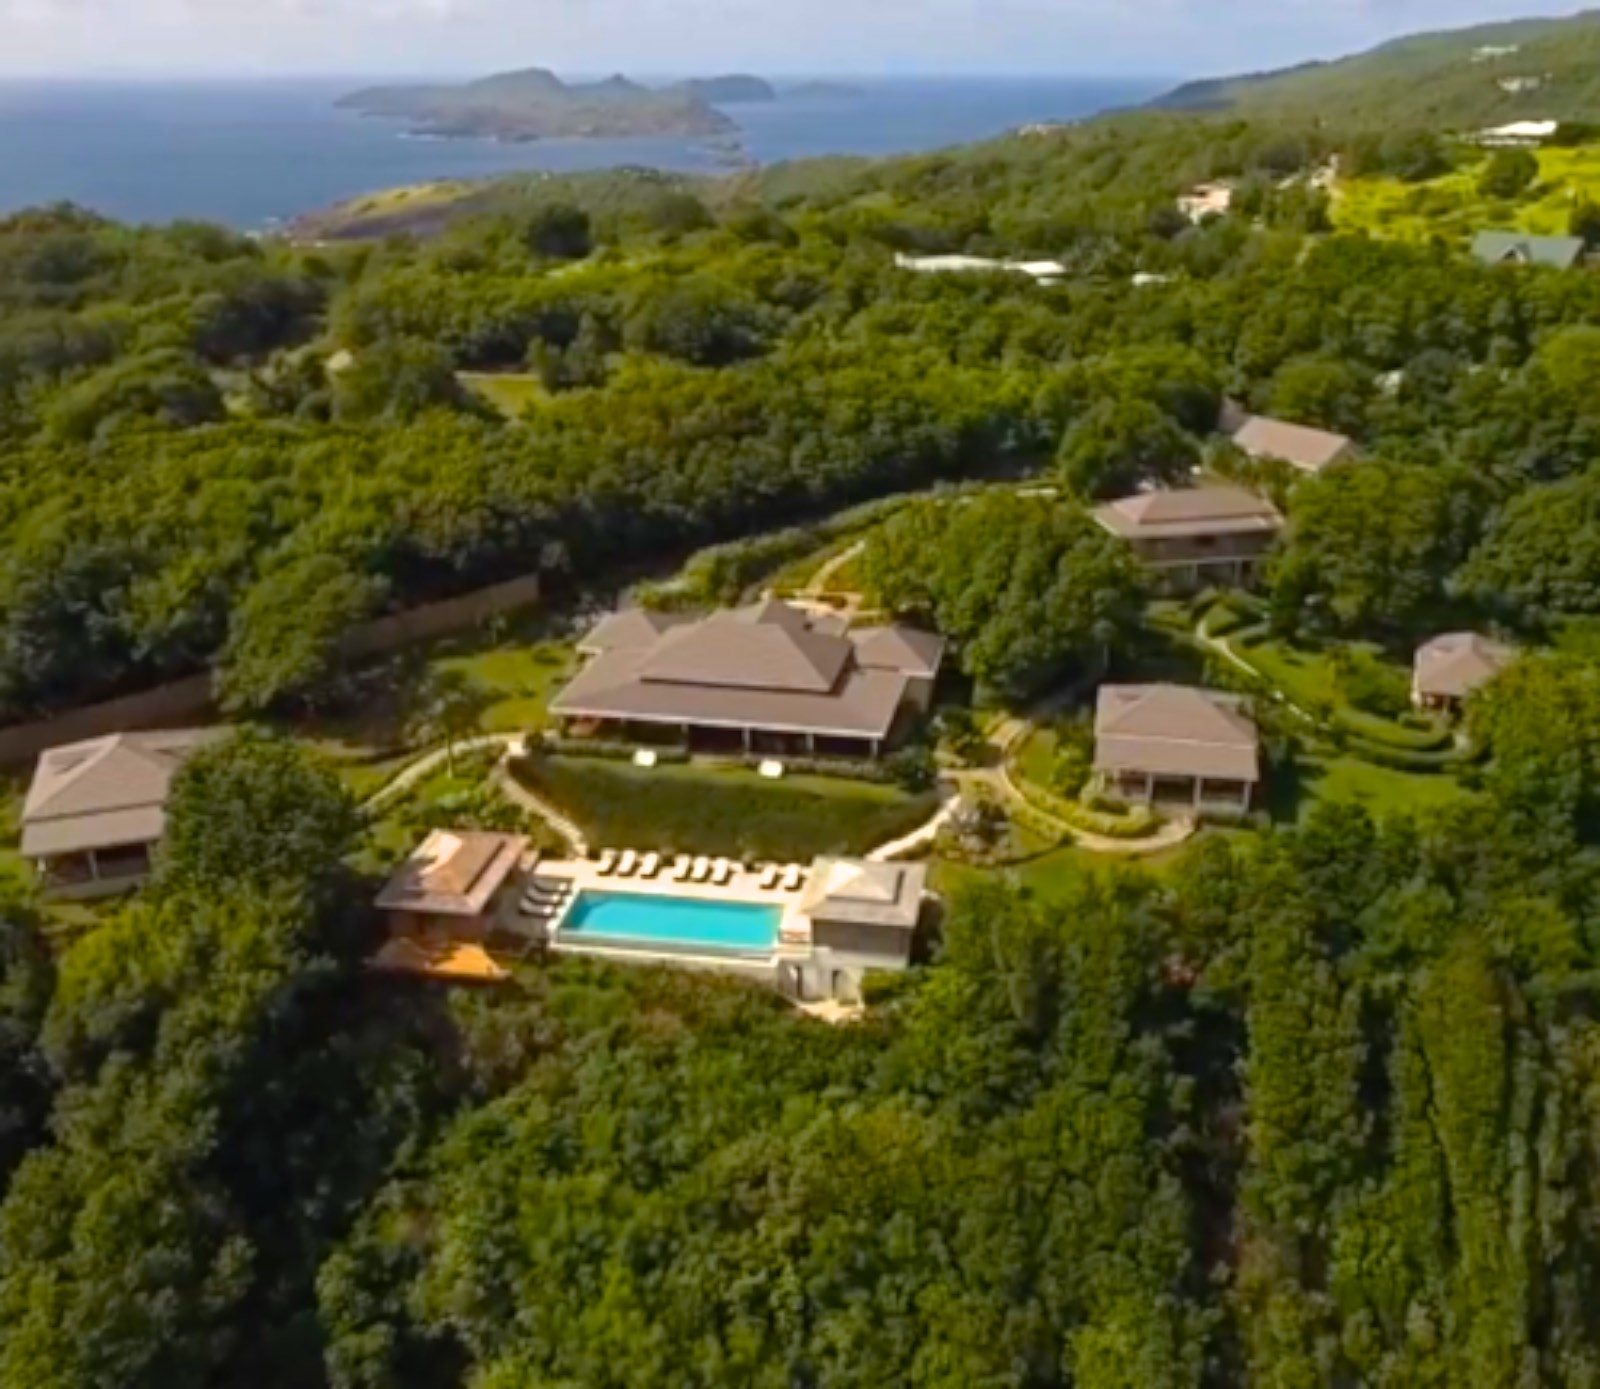 Pleasant Valley Apartments: Bequia Rental Villas, Hotels & Apartments